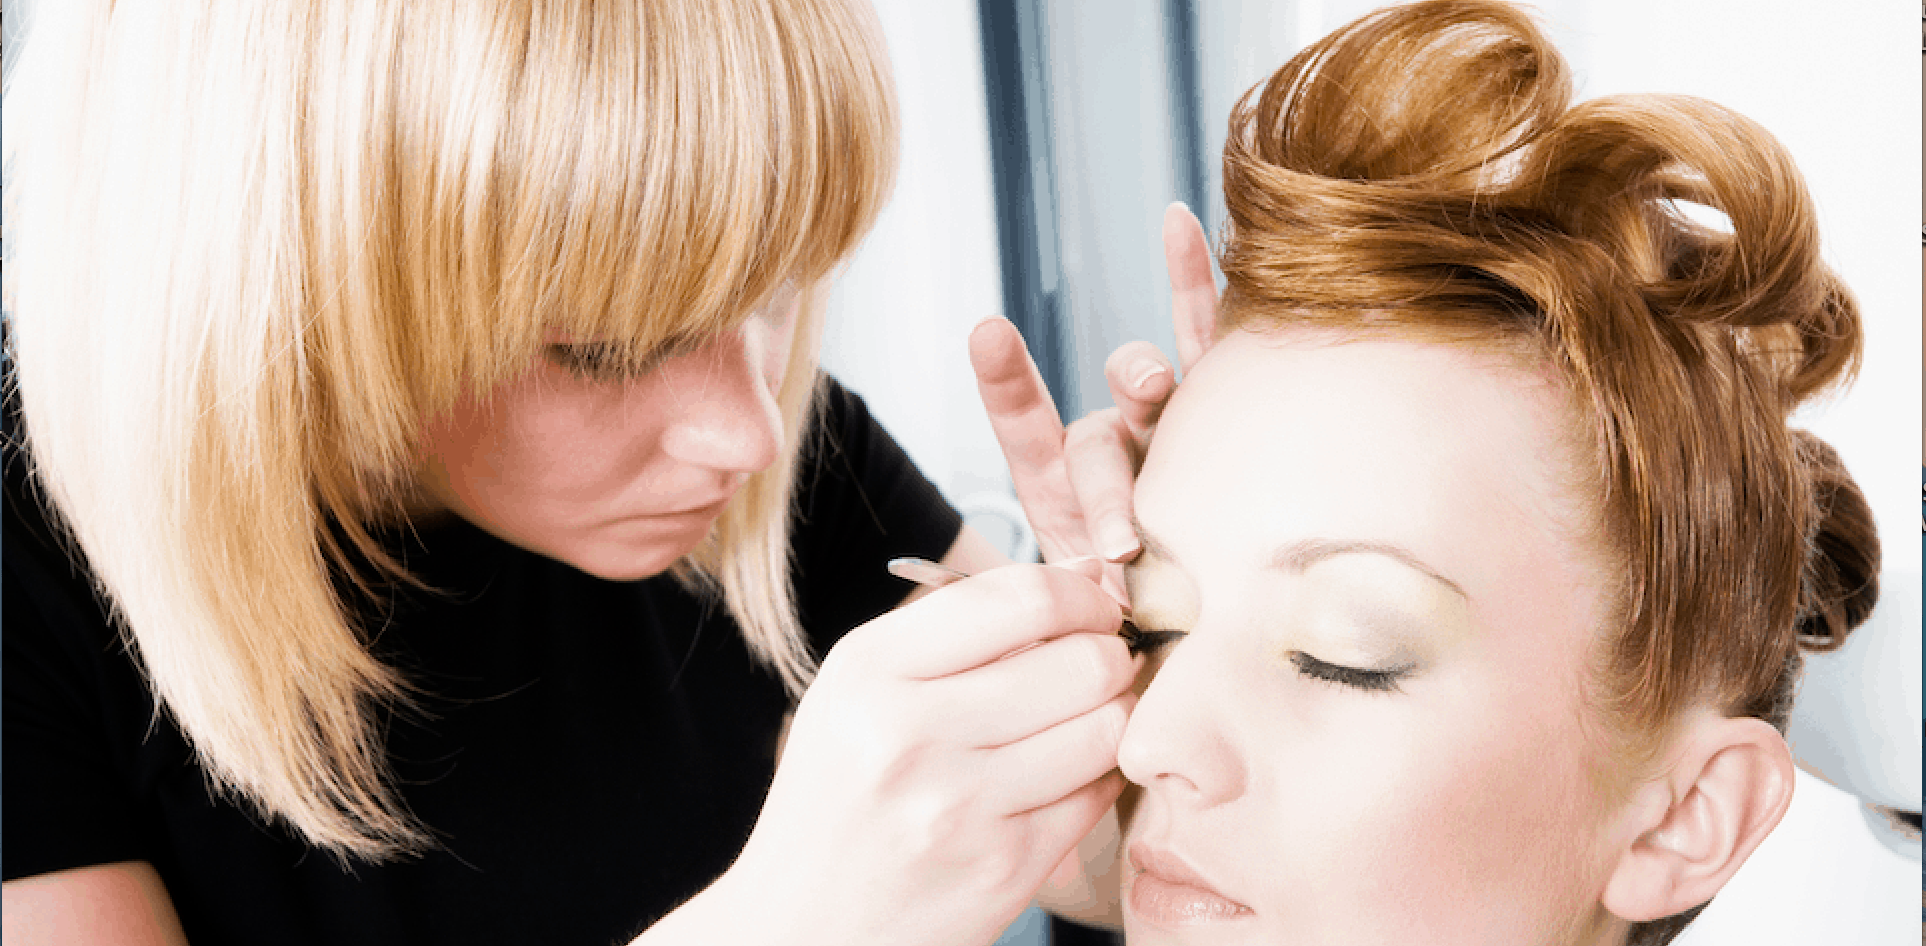 Picture-of-Makeup-Artist-applying-Makeup-at-Esthetis-Training